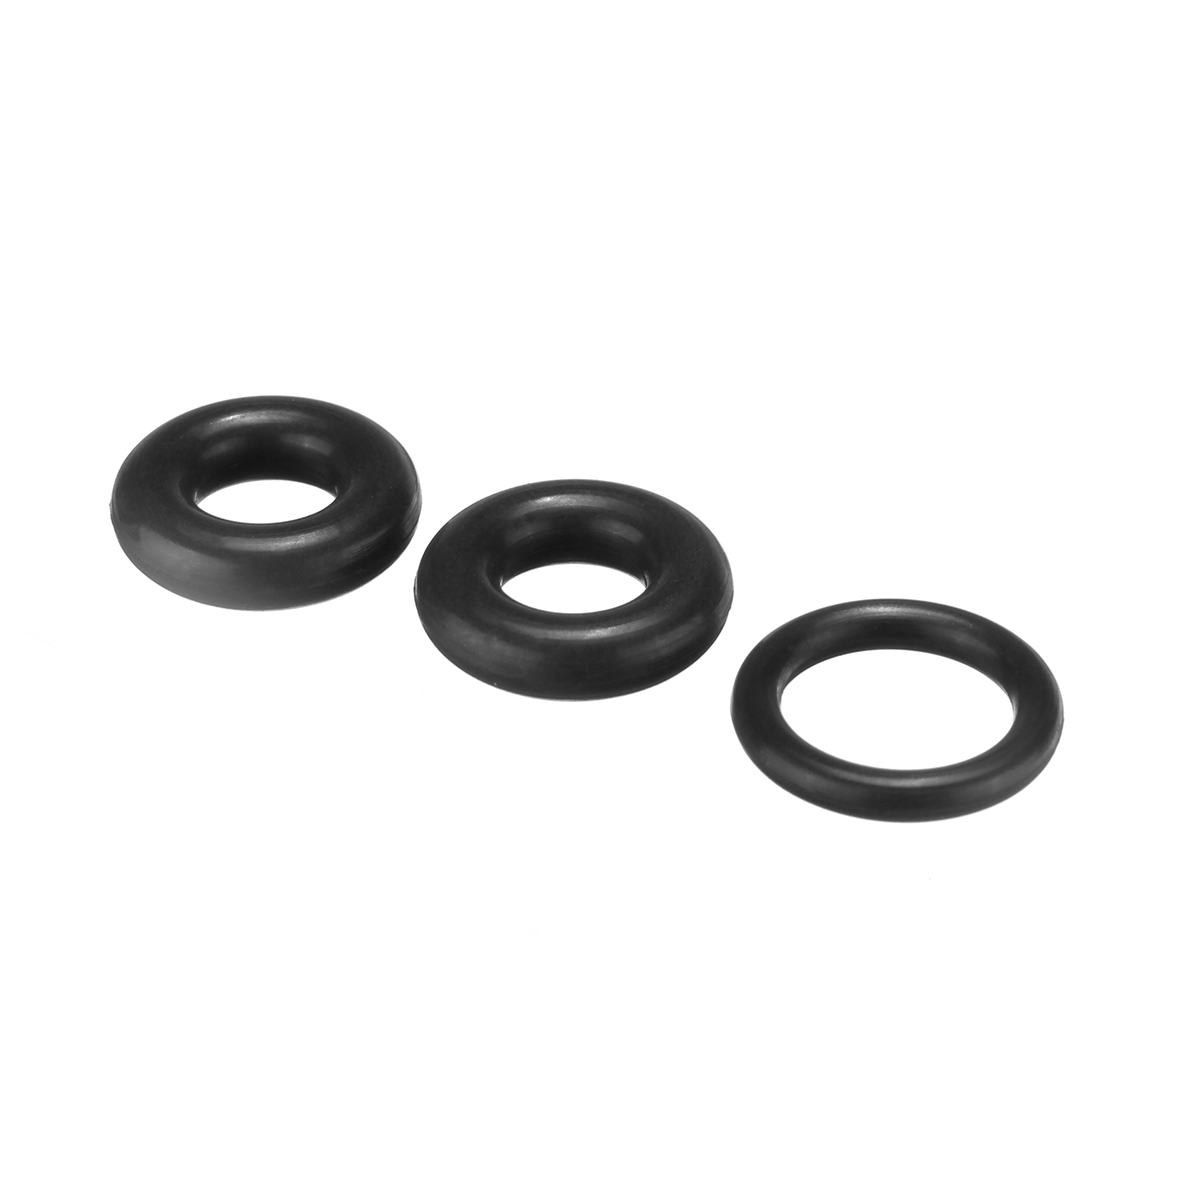 hight resolution of 3 pcs fuel filter housing seal kit for ford 1994 2003 7 3l3 pcs fuel filter